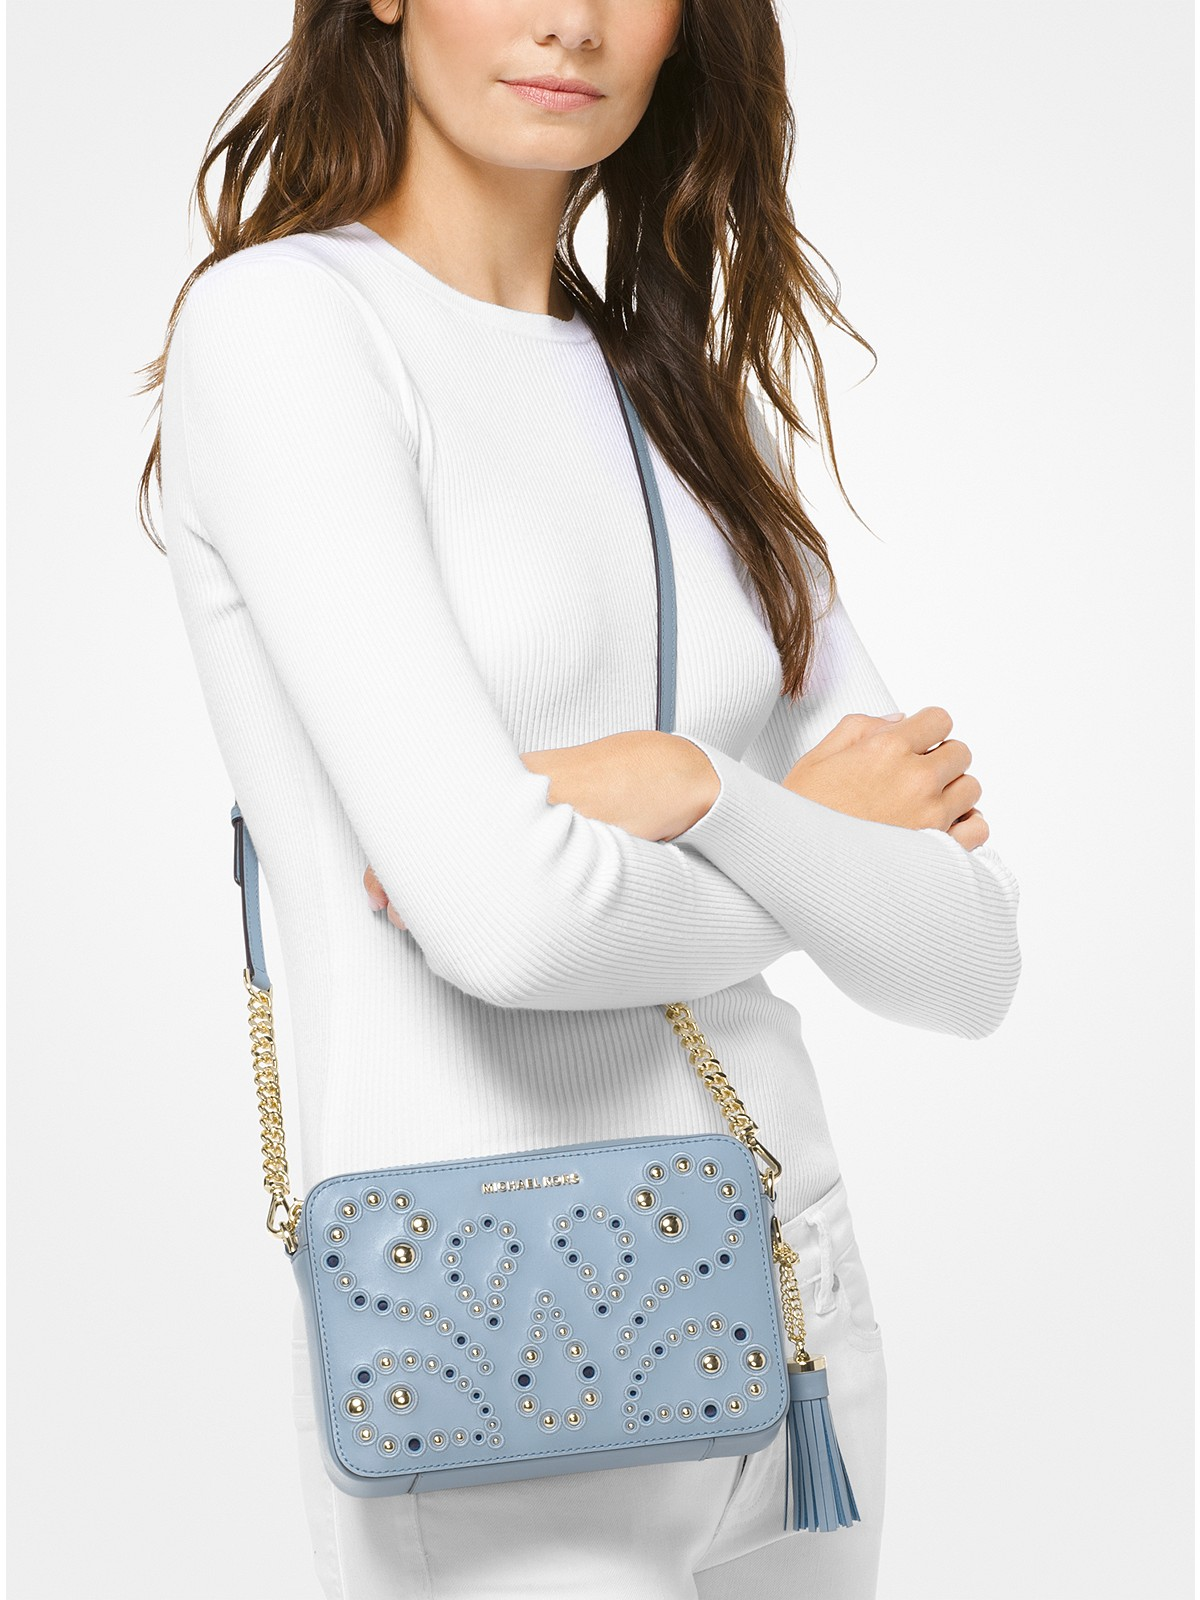 2c83e5f737a2 Michael Kors Ginny Medium Embellished Leather Crossbody at £195 ...